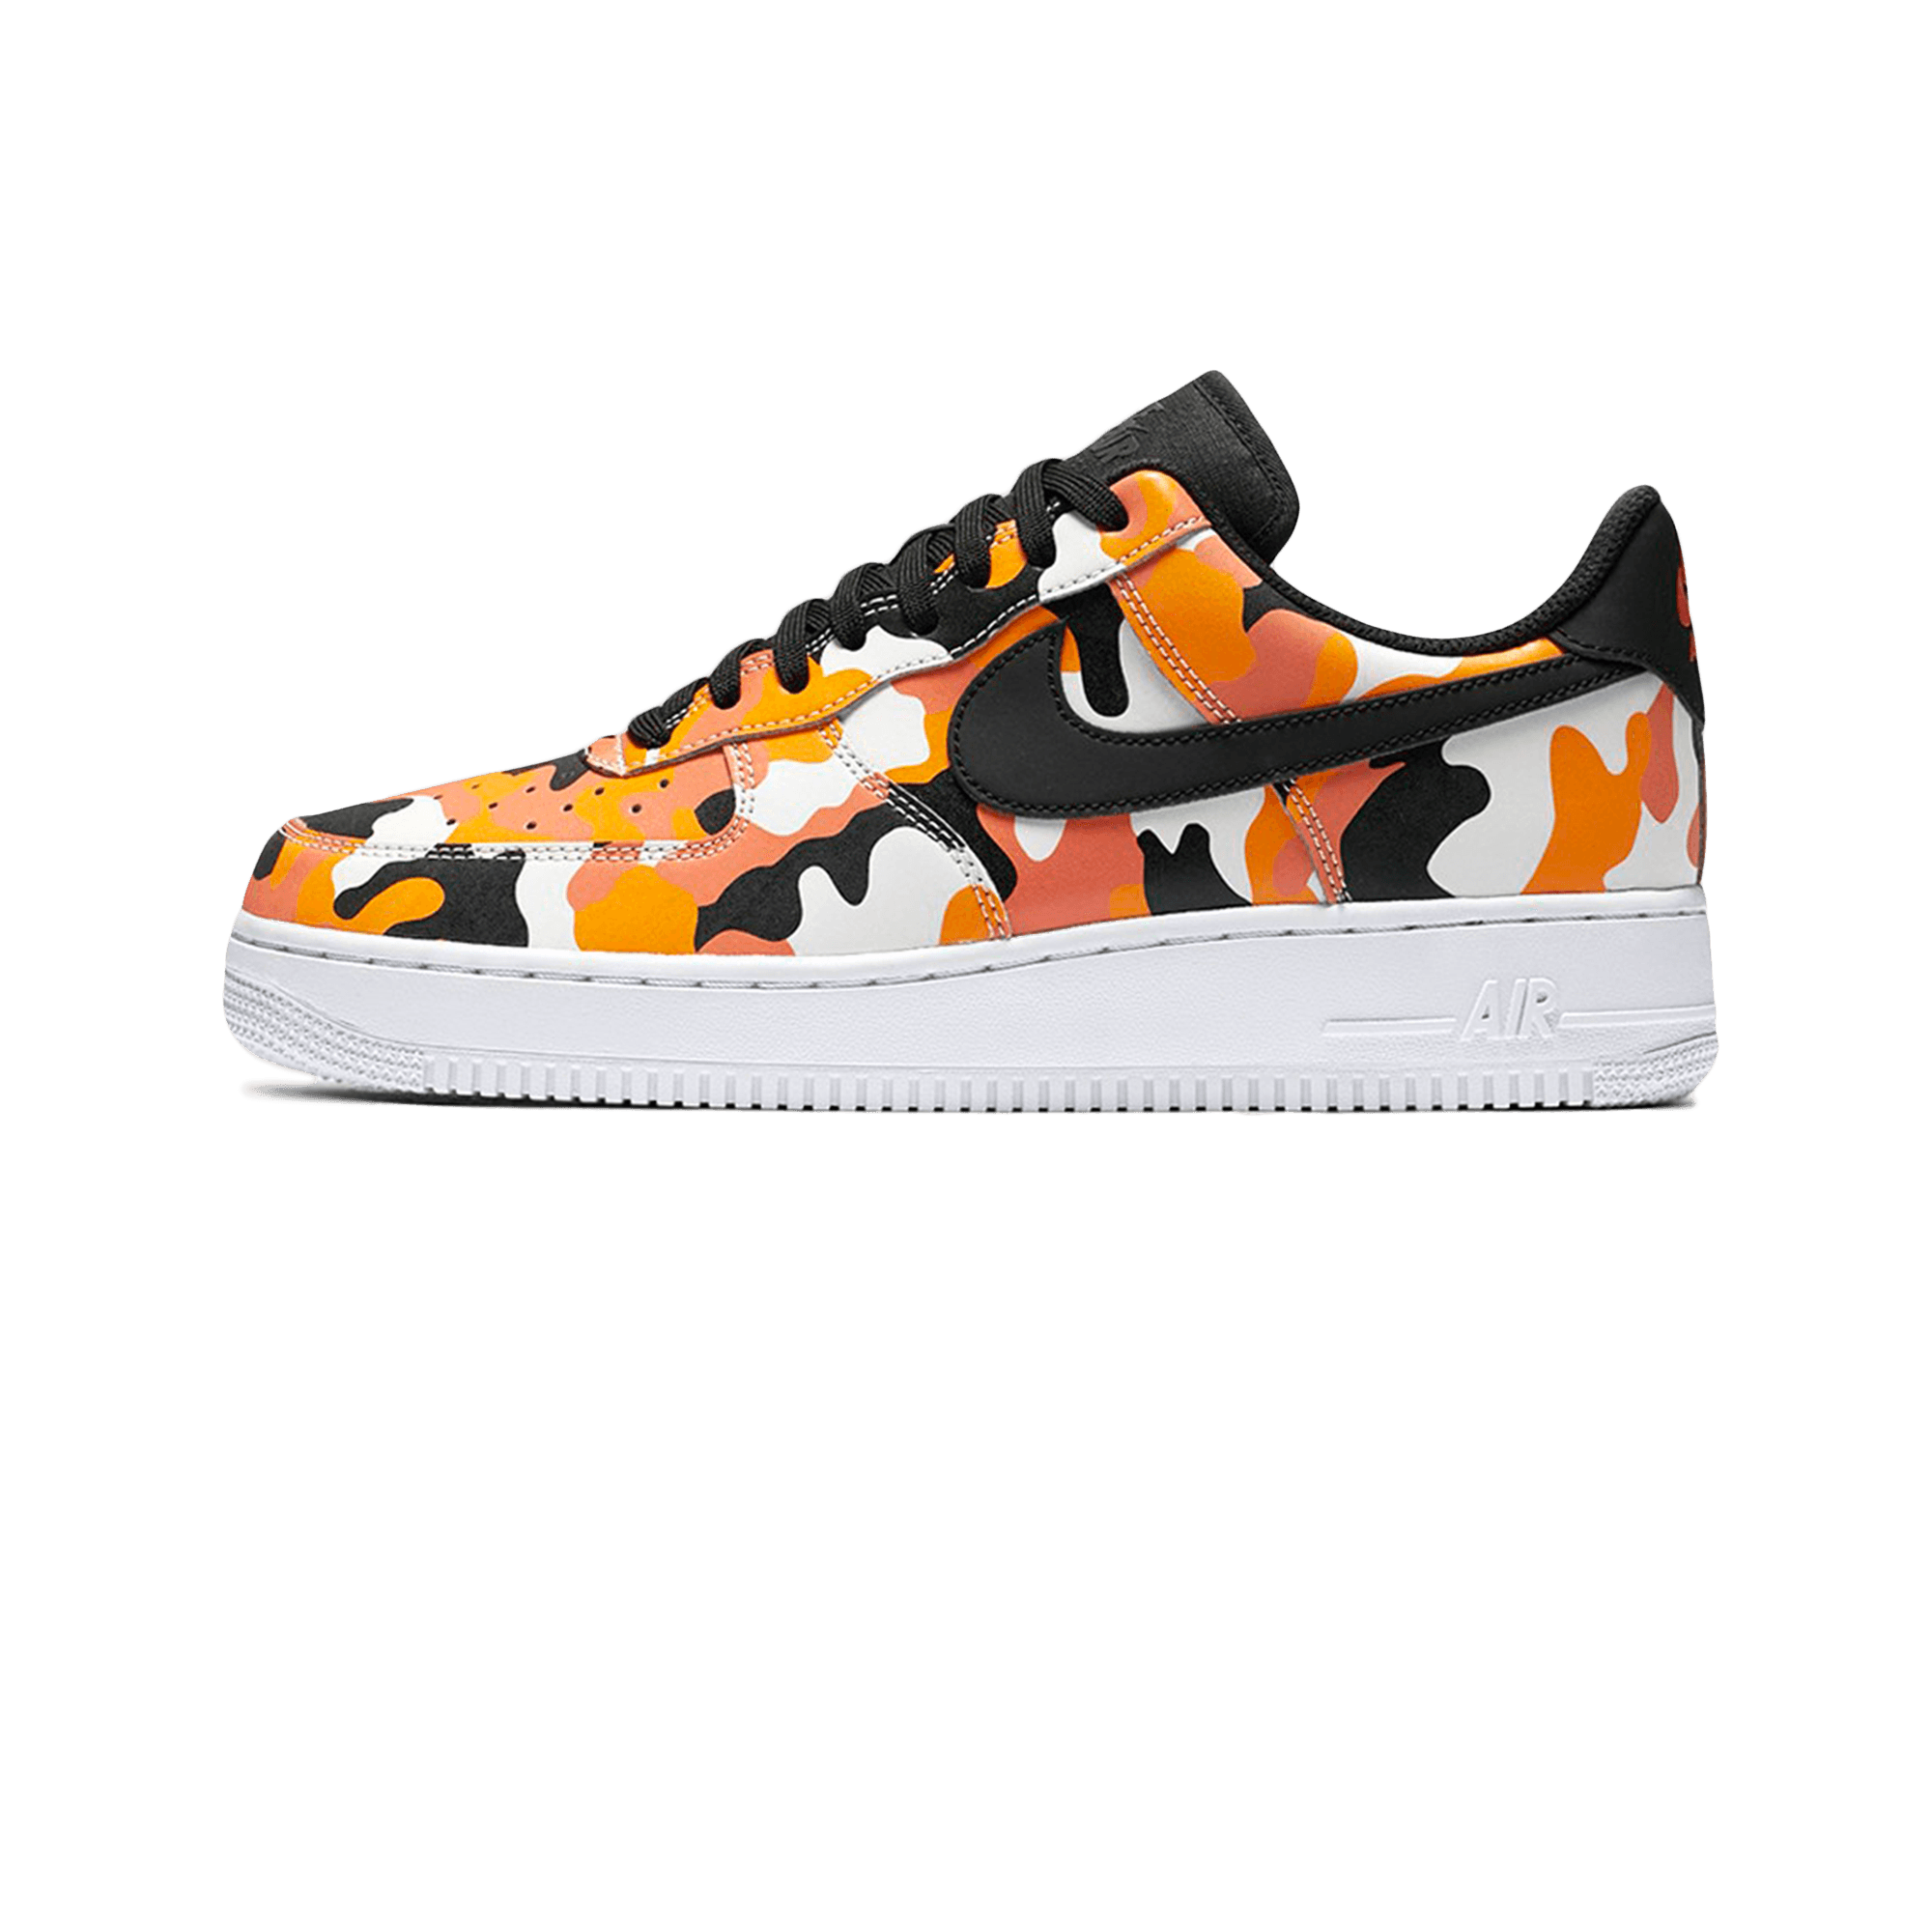 Air Force 1 '07 LV8 team orange/black